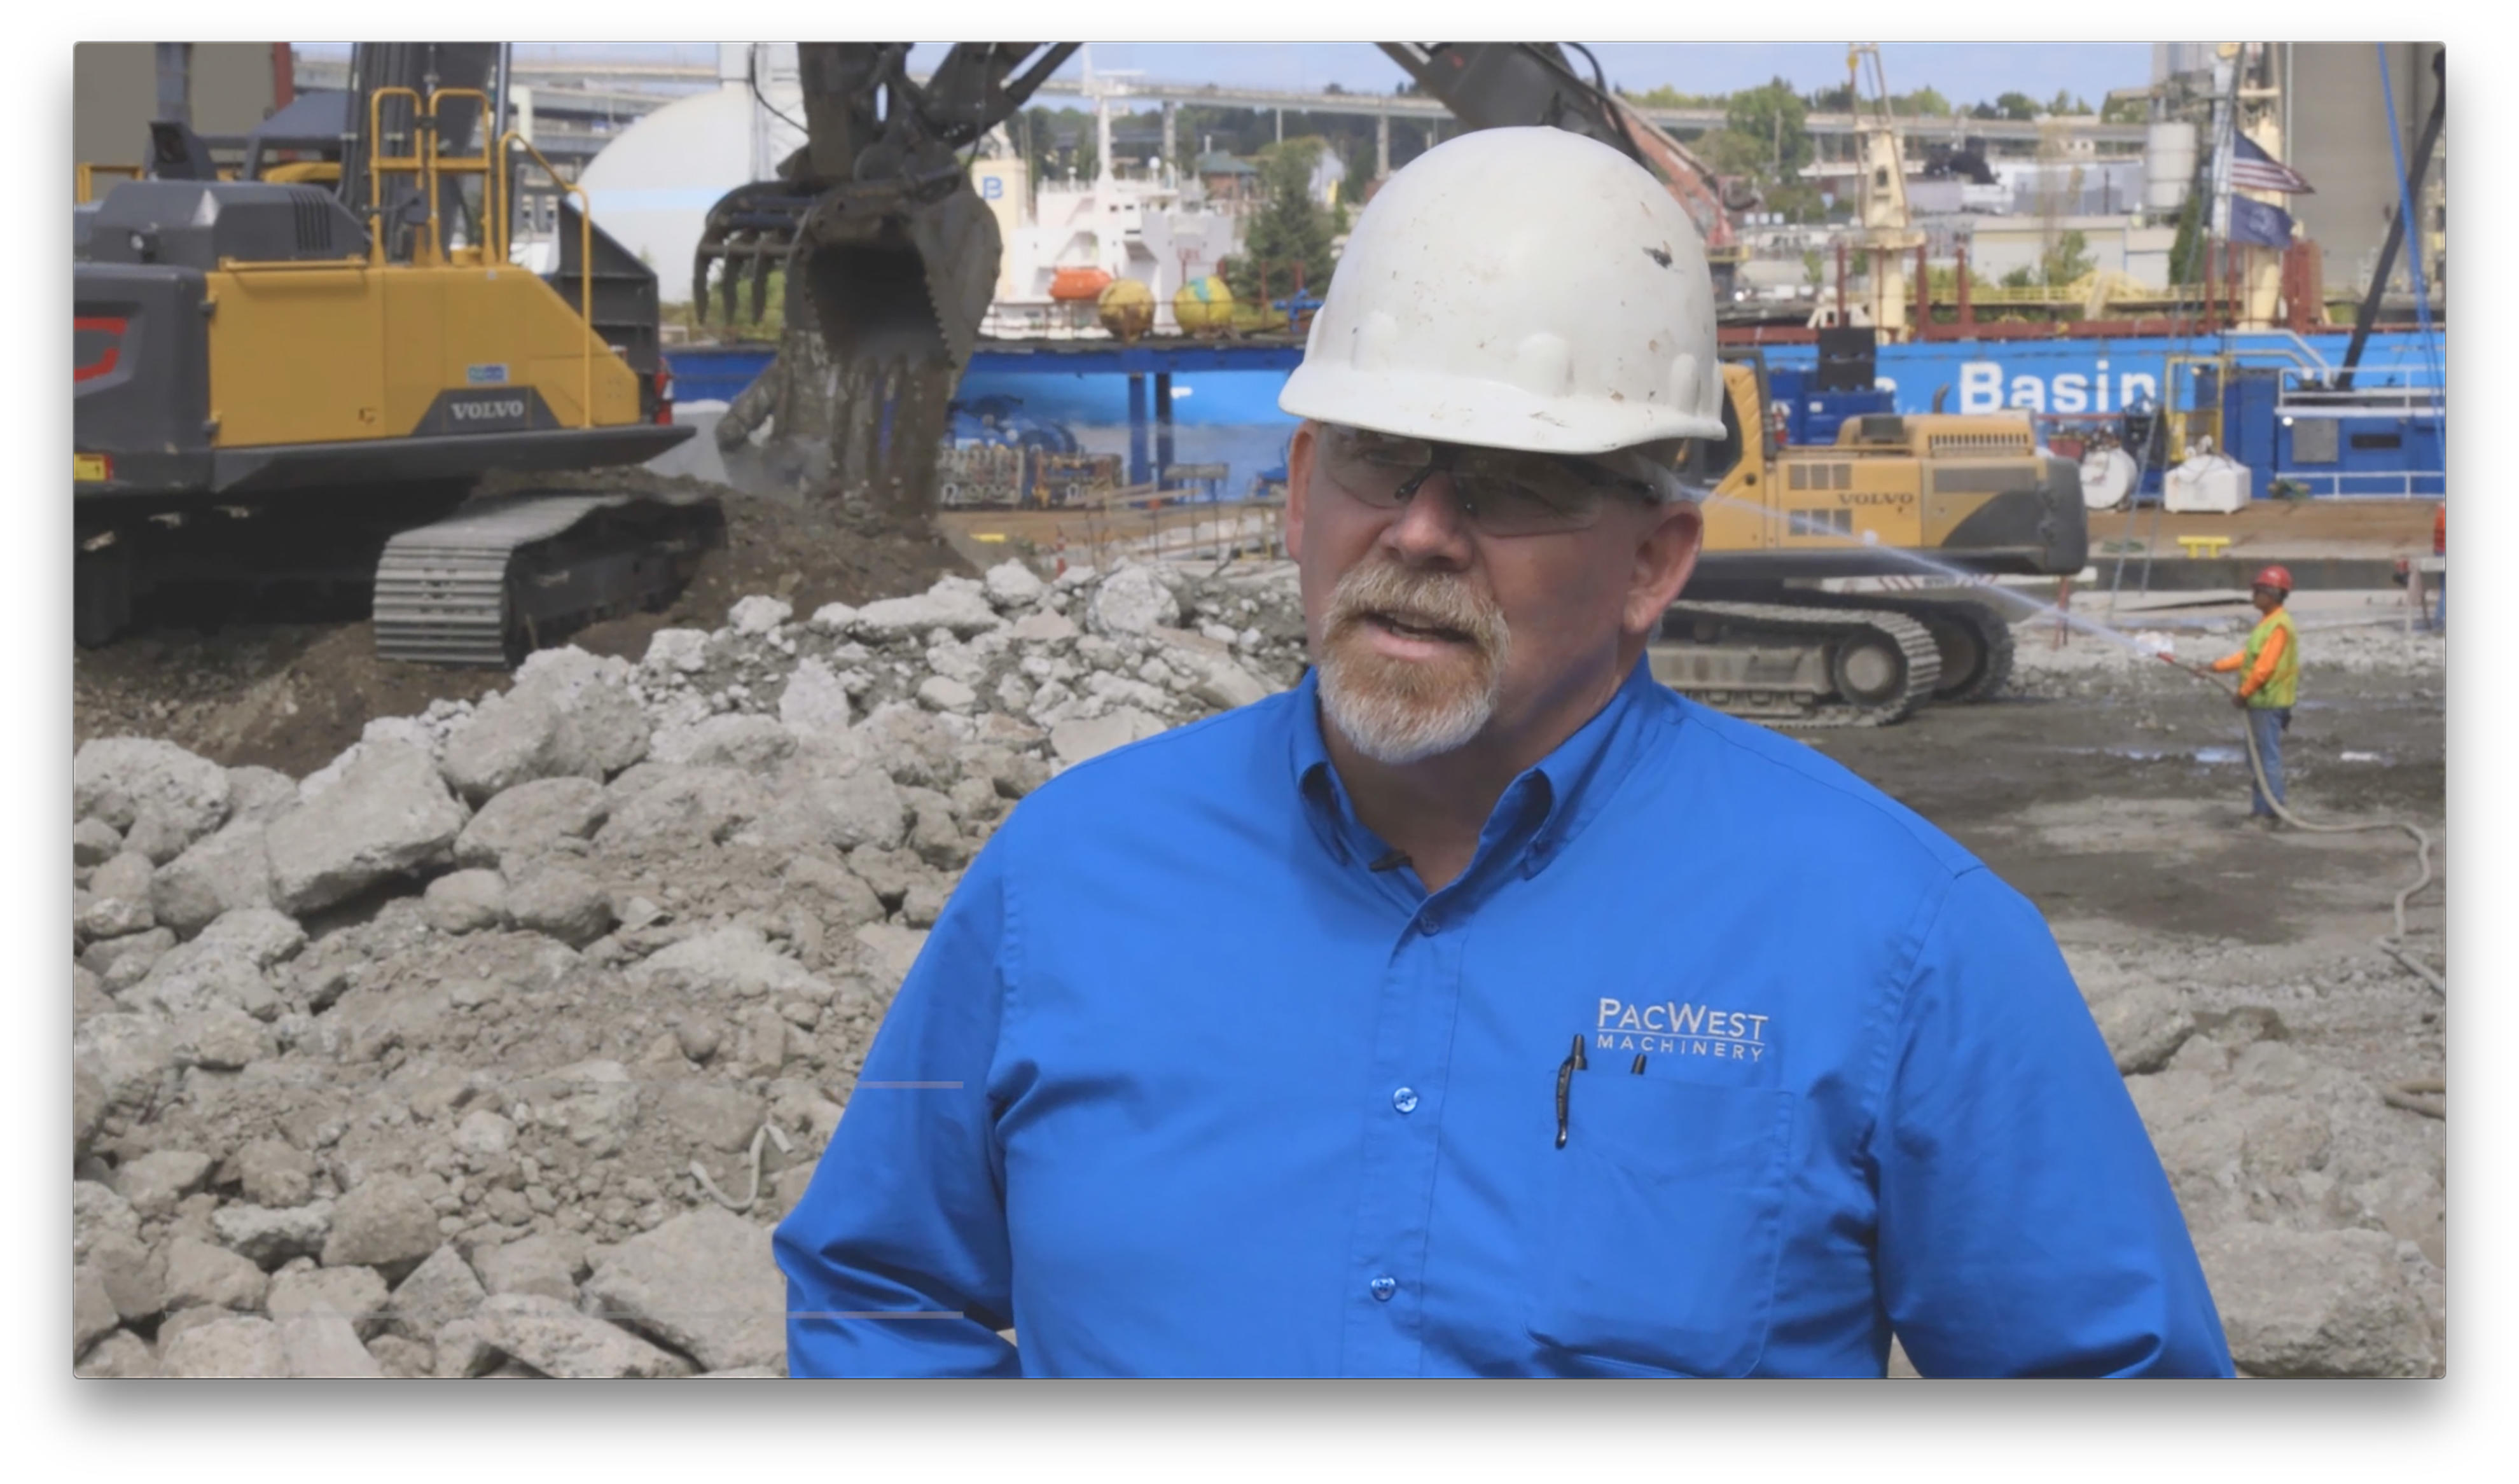 Ed Kanable, a sales representative for PacWest, works with Northwest Demolition